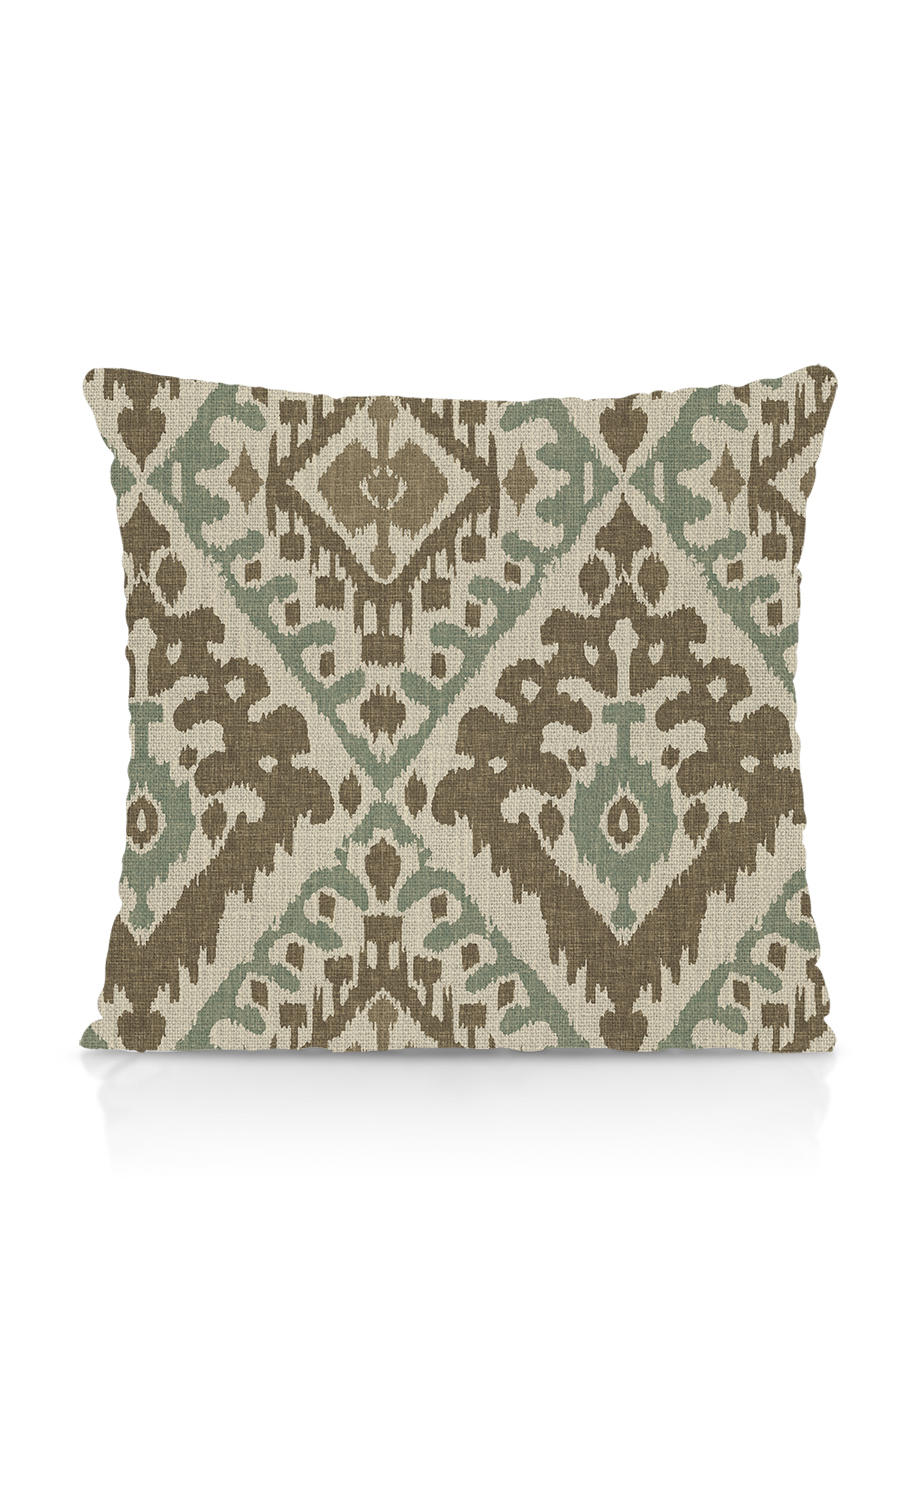 Printed Ikat Custom Knife Edge Cushions